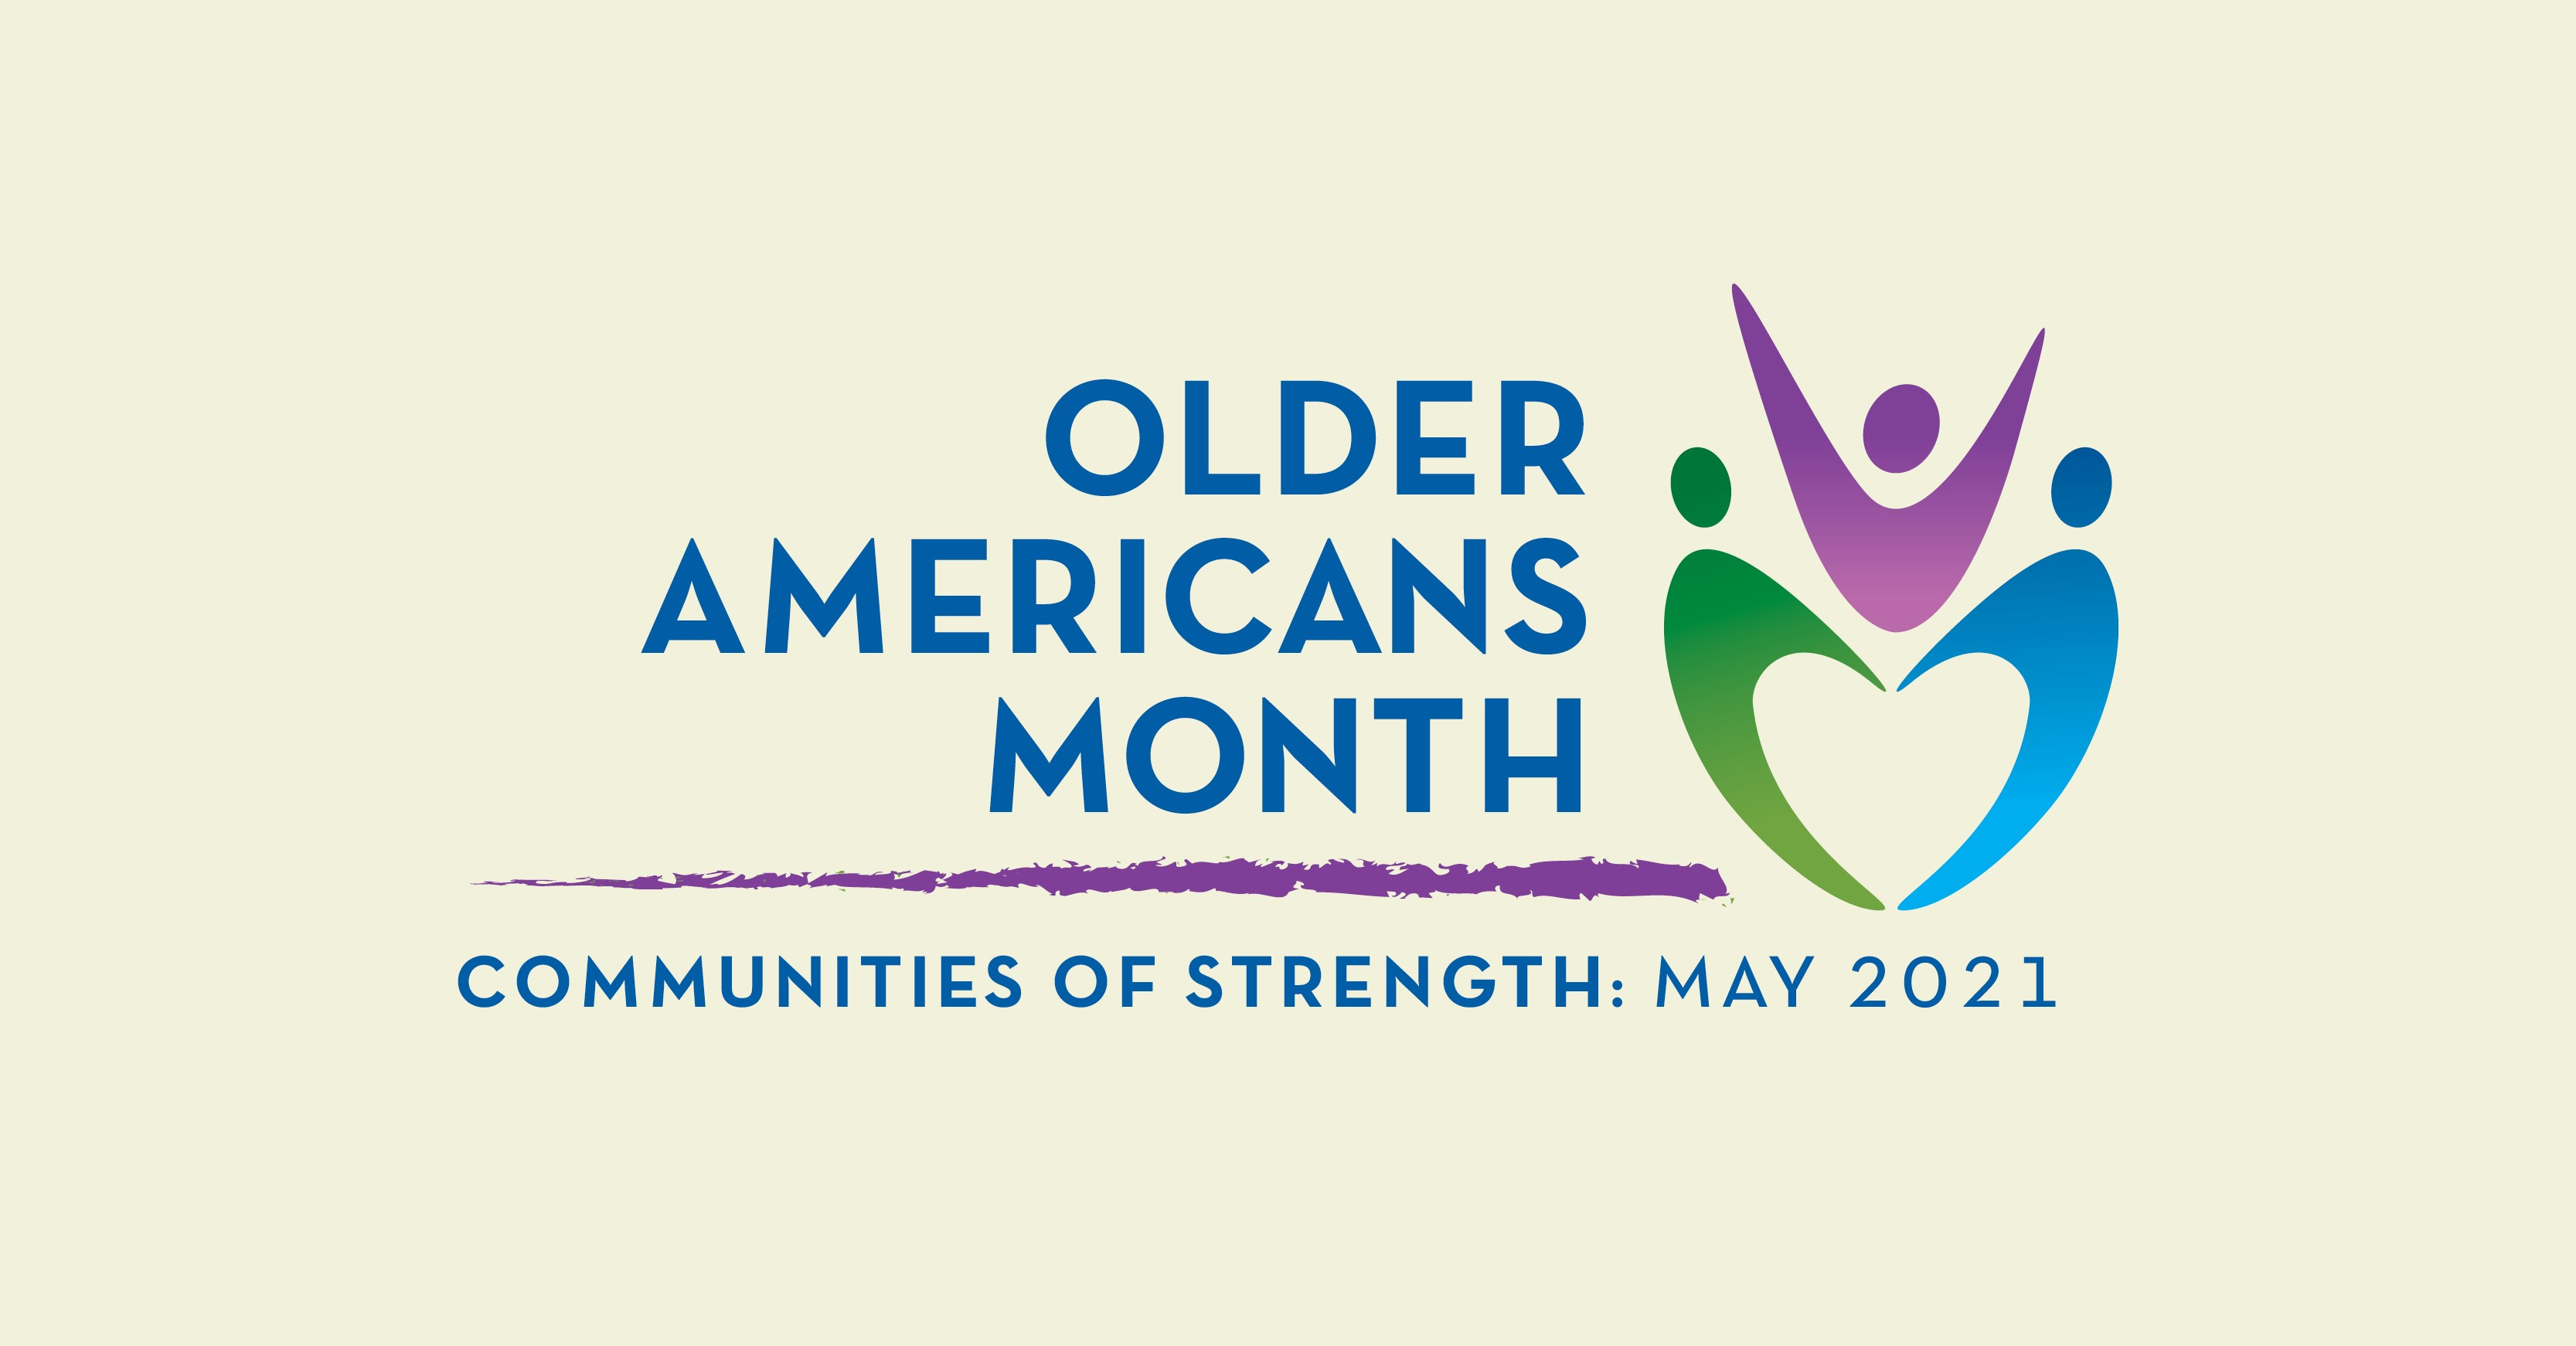 Social Media Graphic: Older Americans Month, Communities of Strength, May 2021